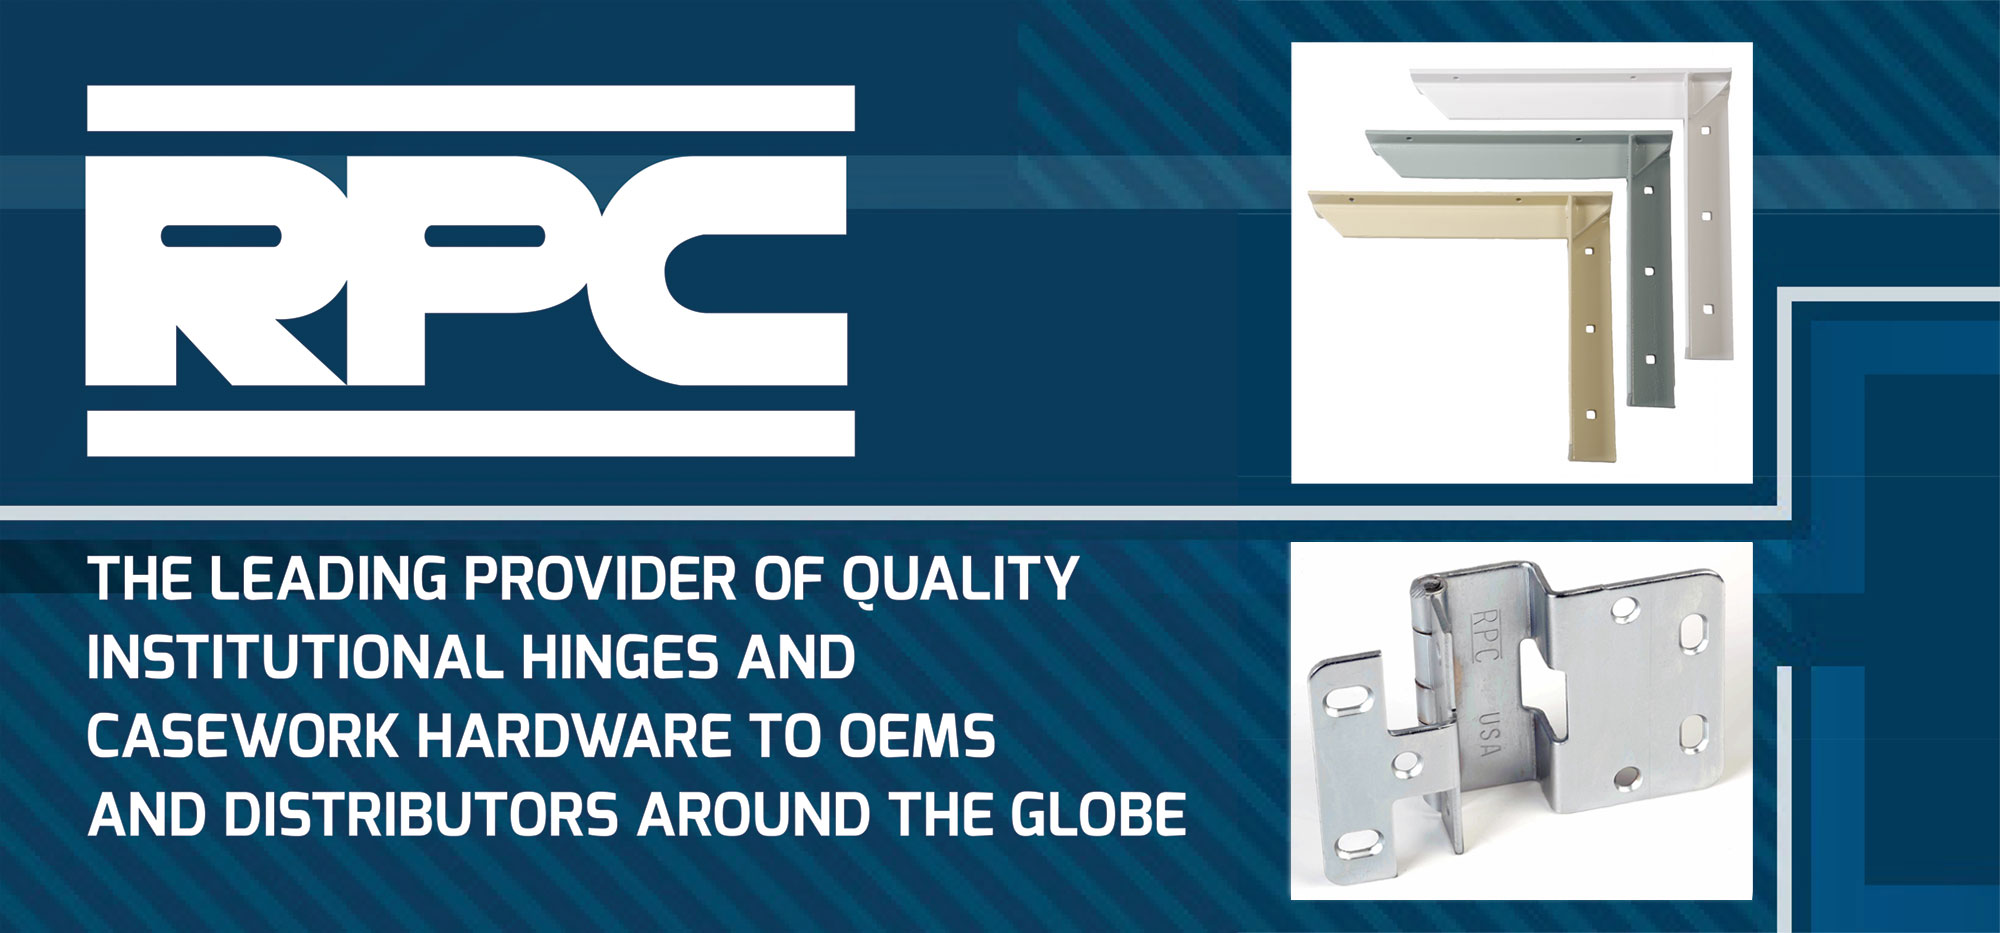 A leading provider of quality institutional hinges and casework hardware to oems and distributors around the globe including the Rockford Hinge..